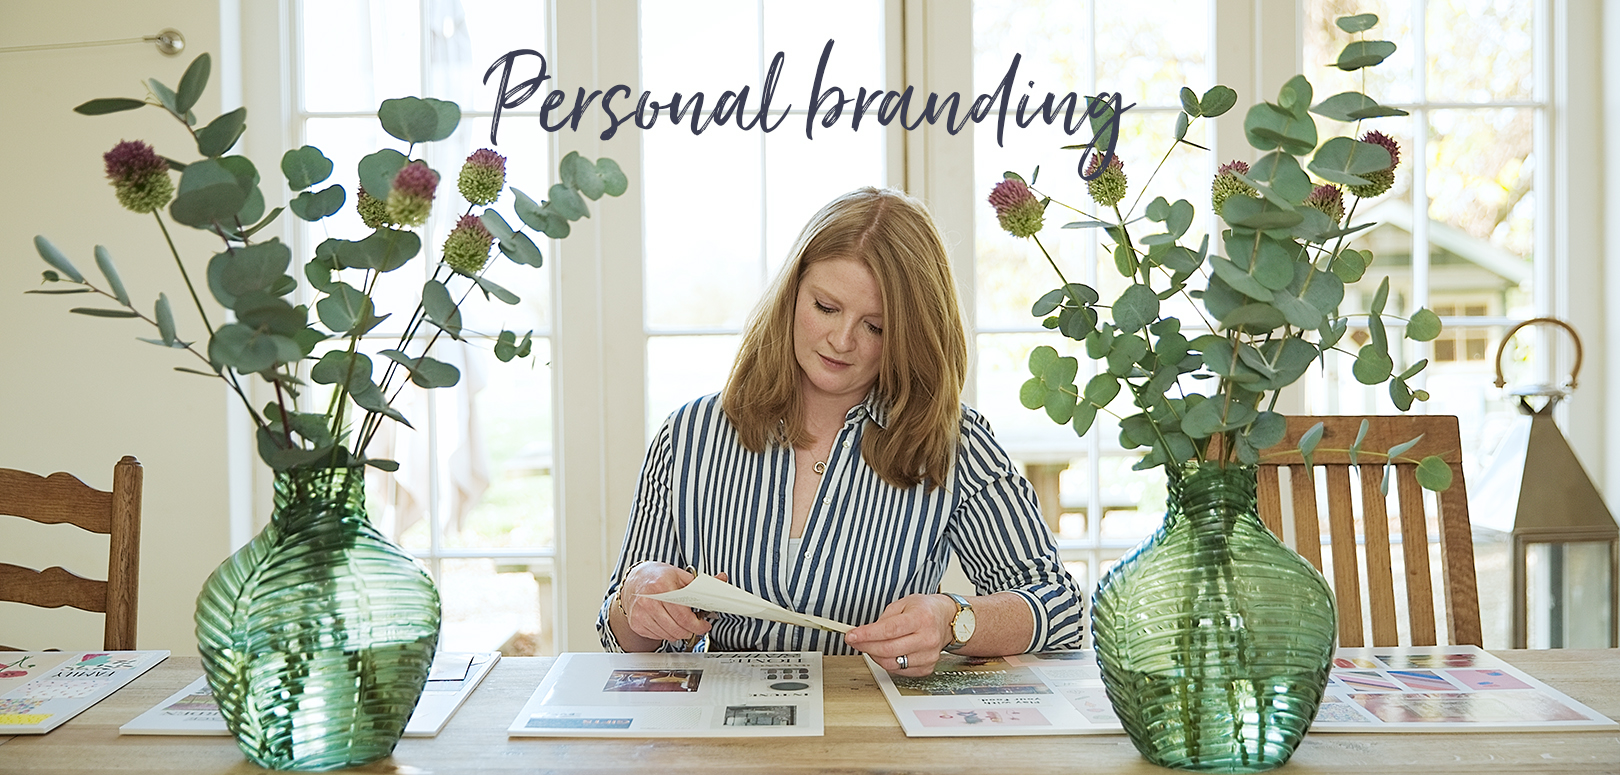 Personal branding photography – featured shoot